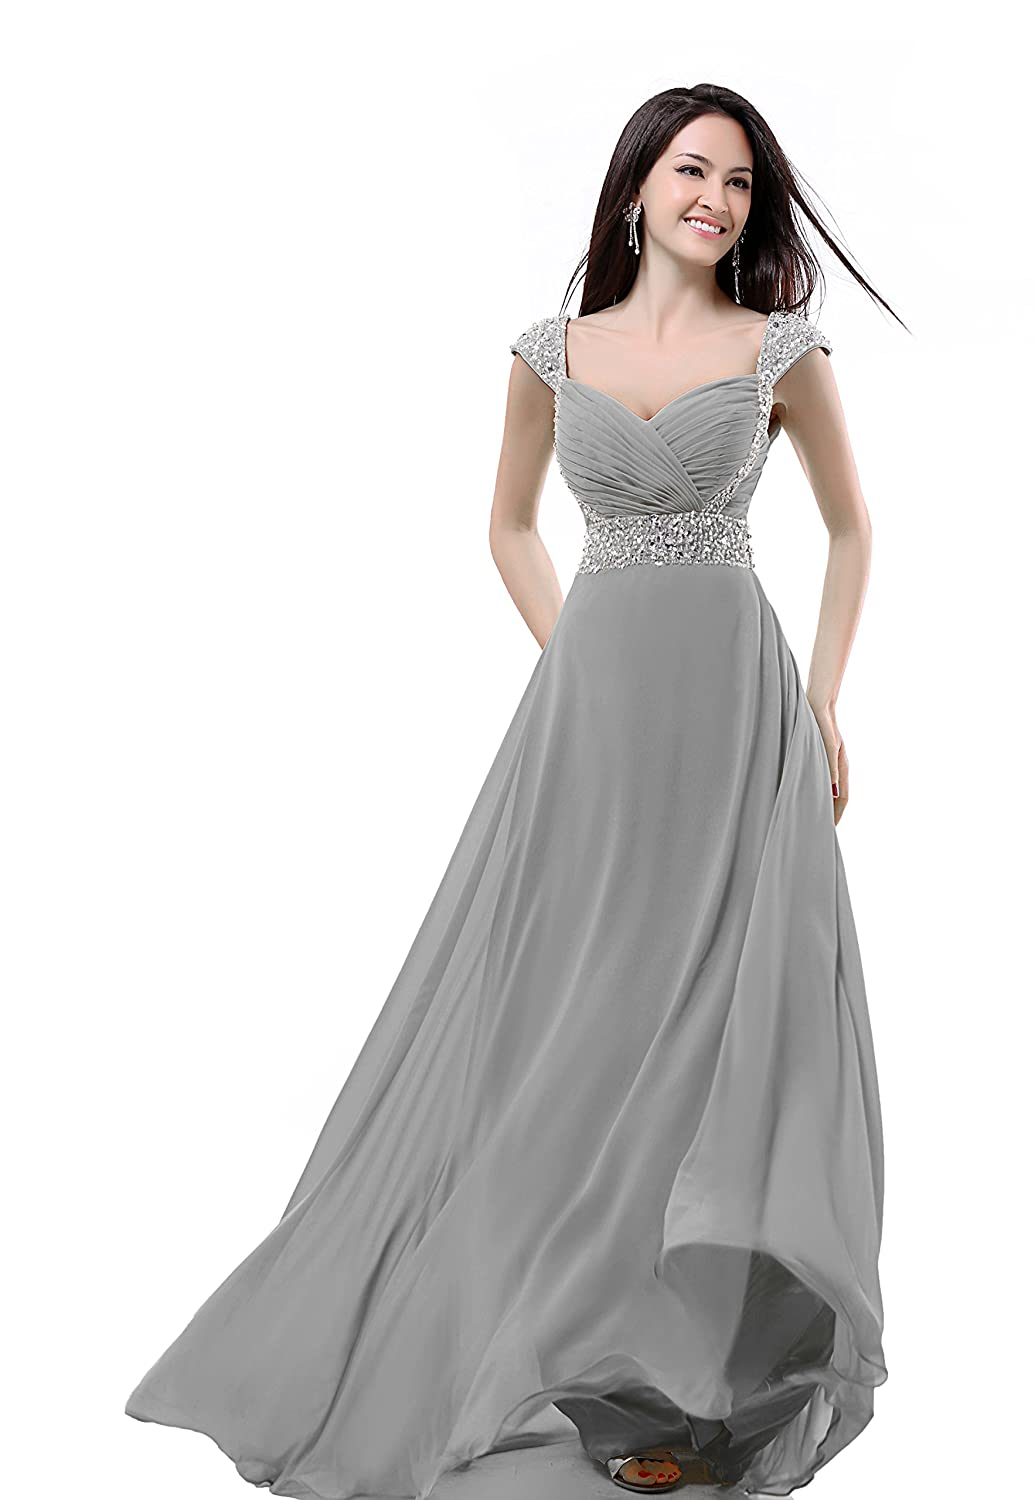 Amazon.com: Balllily Womens Long Chiffon Bridesmaid Prom Dress Evening Gowns: Clothing